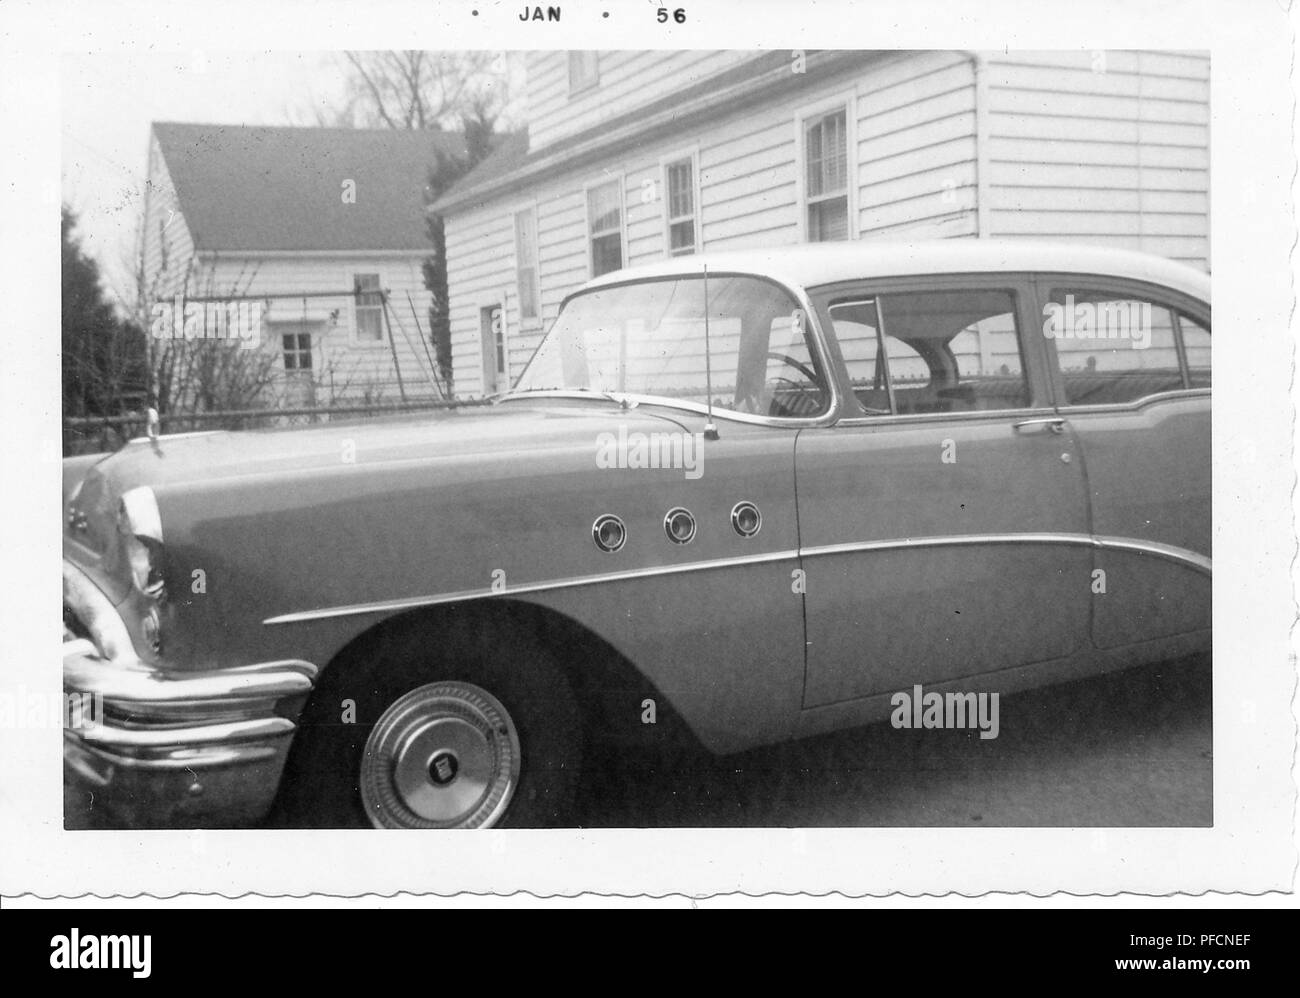 Black and white photograph, showing a close-up, partial profile view of a two-tone, hardtop Chevrolet Bel Air, parked in a driveway, with part of a small house visible in the background, likely photographed in Ohio, 1956. () - Stock Image